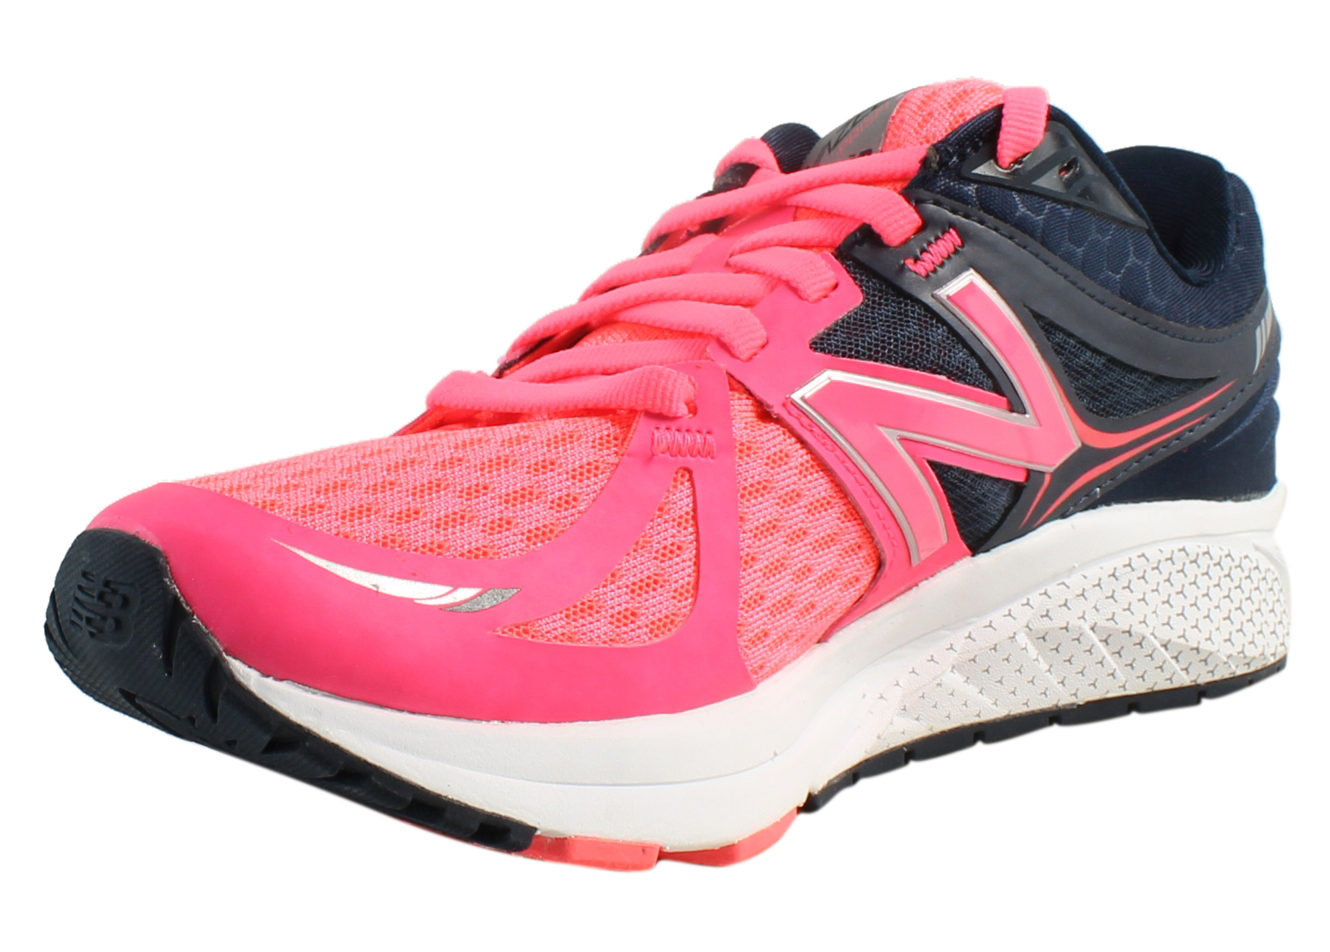 New Balance Womens Size Wprsmbg Pink/Navy Running Shoes Size Womens 5.5 New d7be9c